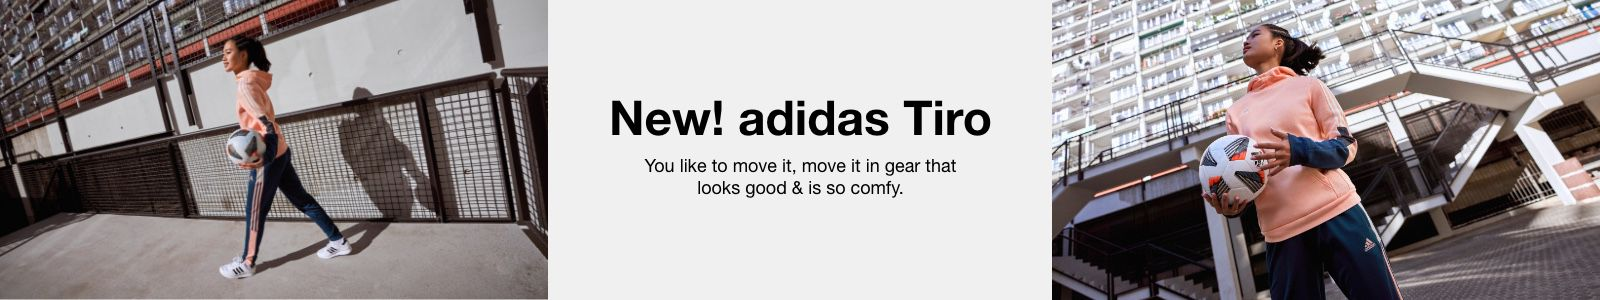 New! adidas Tiro, You like to move it, move it in gear that looks good and is so comfy